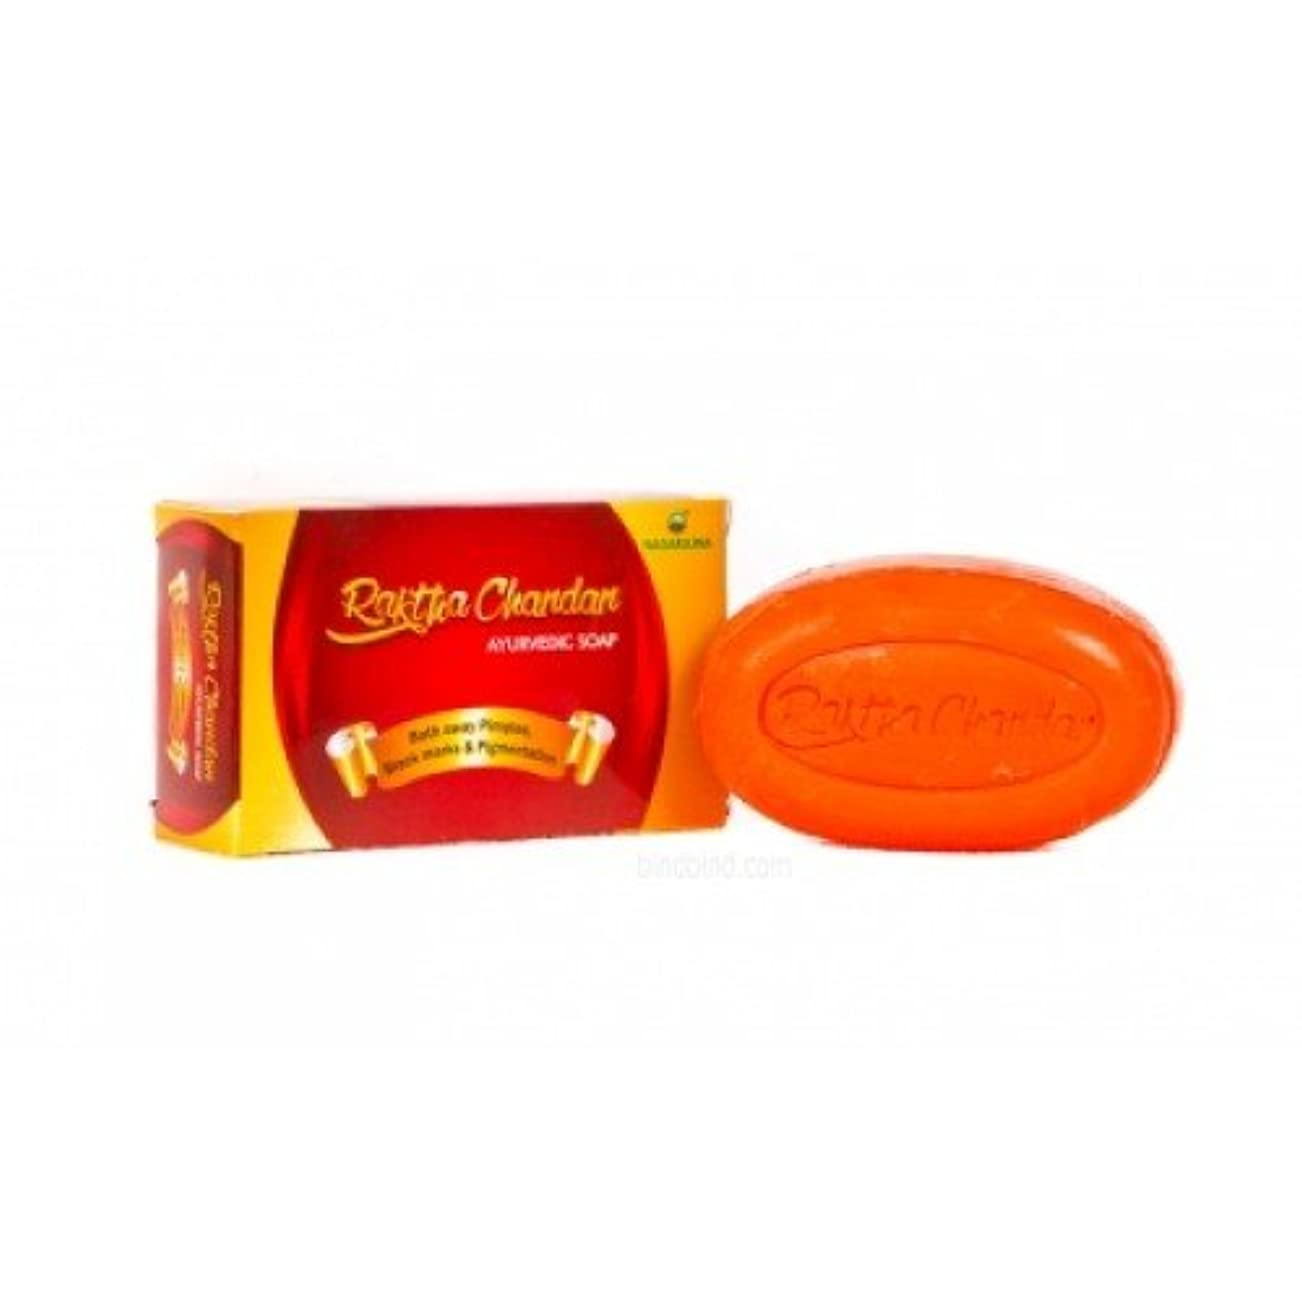 運動確かにファンブルNagarjuna Raktha Chandan Ayurvedic Soap Best For Glowing Skin